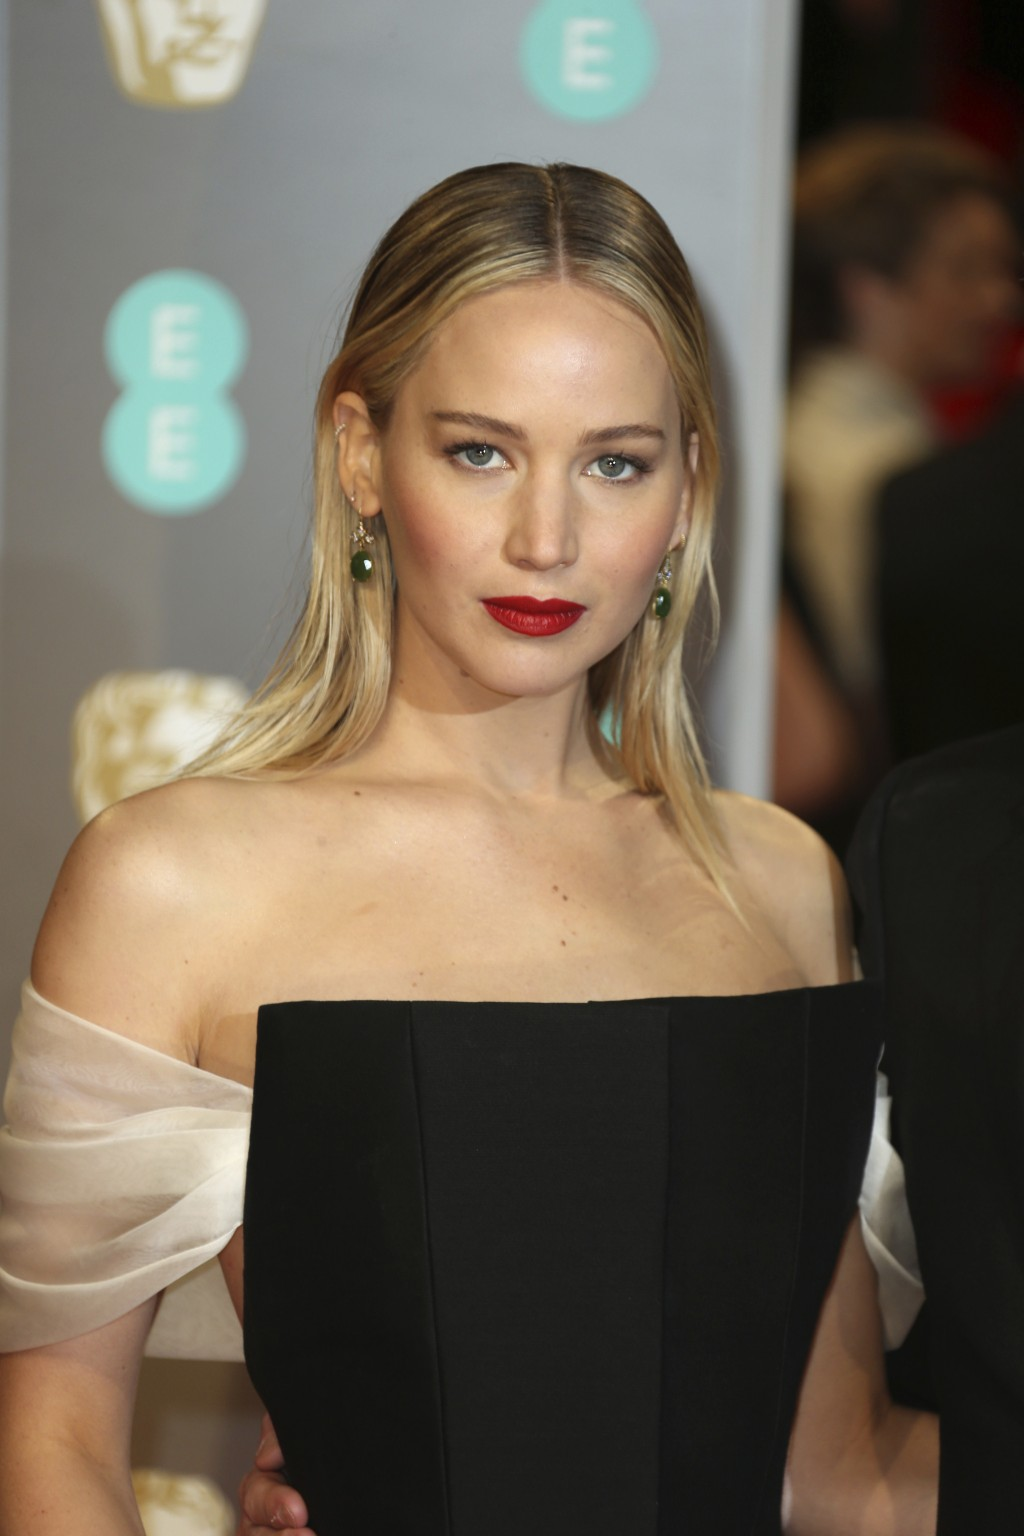 Actress Jennifer Lawrence poses for photographers upon arrival at the BAFTA 2018 Awards in London, Sunday, Feb. 18, 2018. (Photo by Joel C Ryan/Invisi...